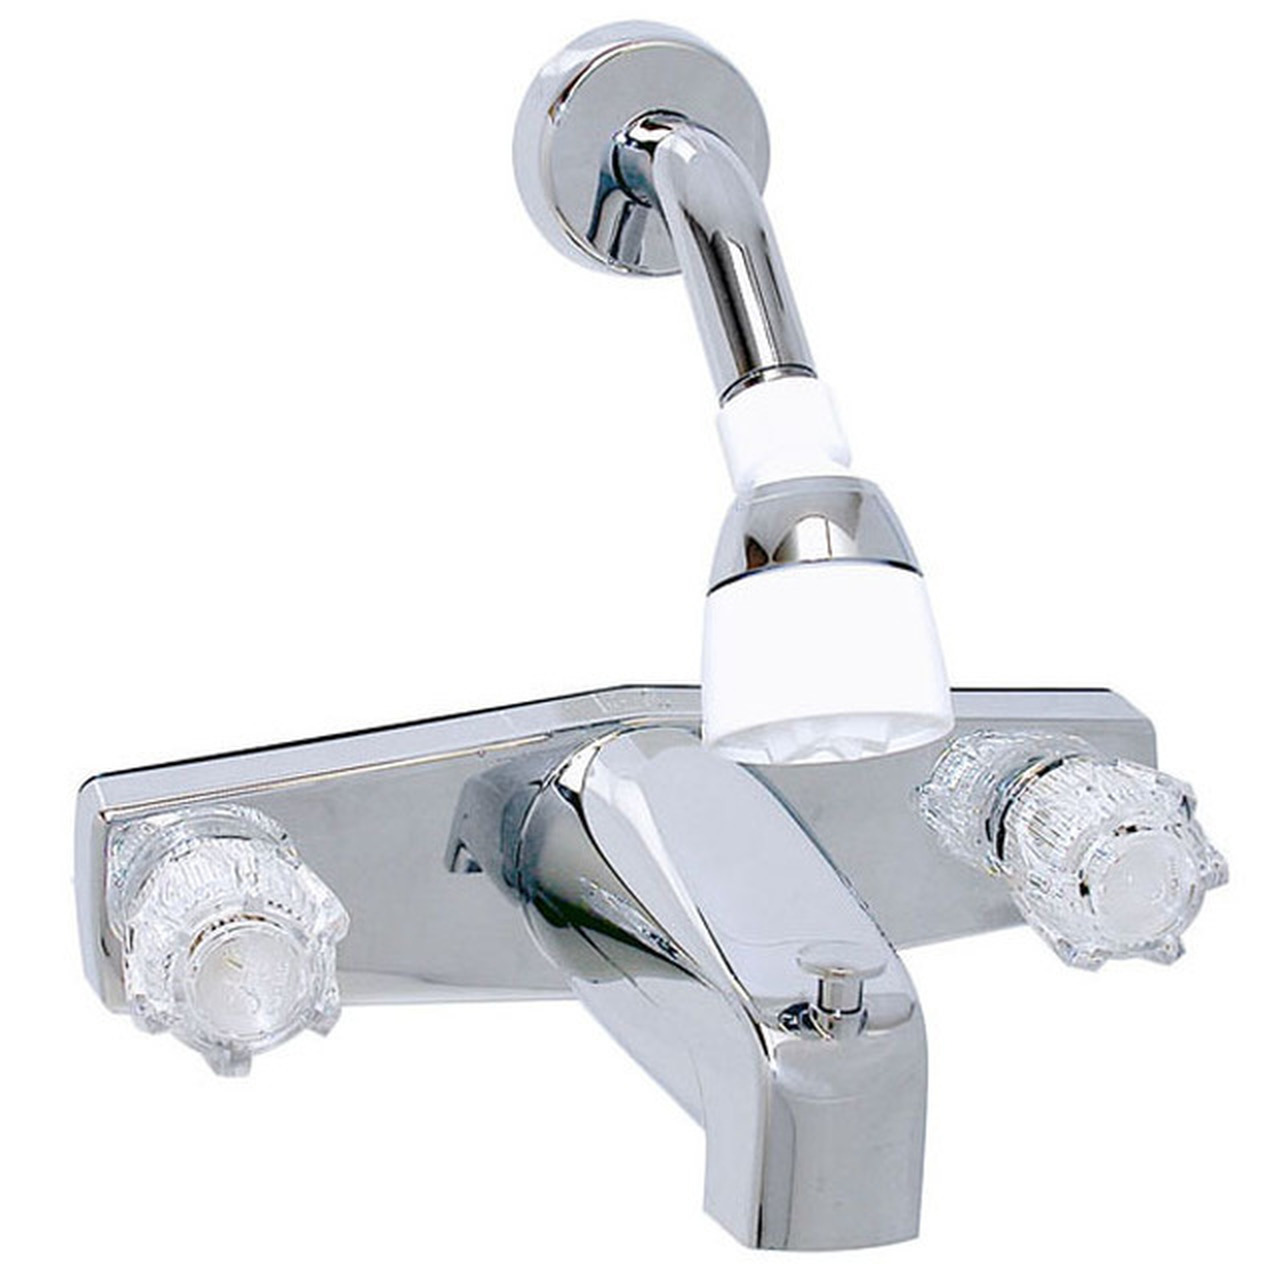 Bathroom Faucets & Shower Heads